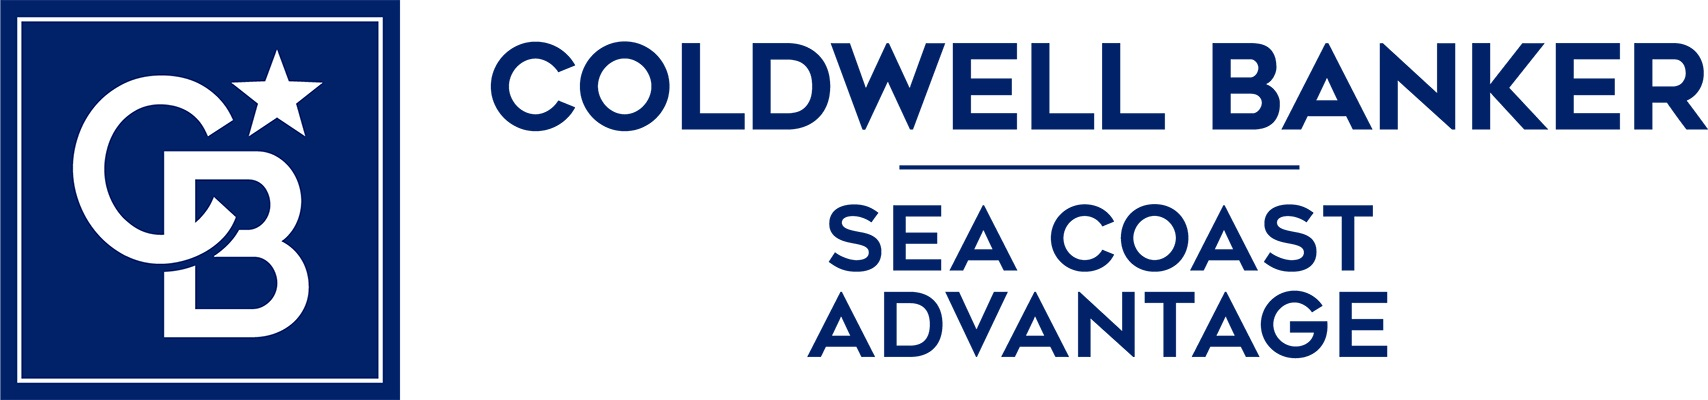 Philip Misciagno - Coldwell Banker Sea Coast Advantage Realty Logo